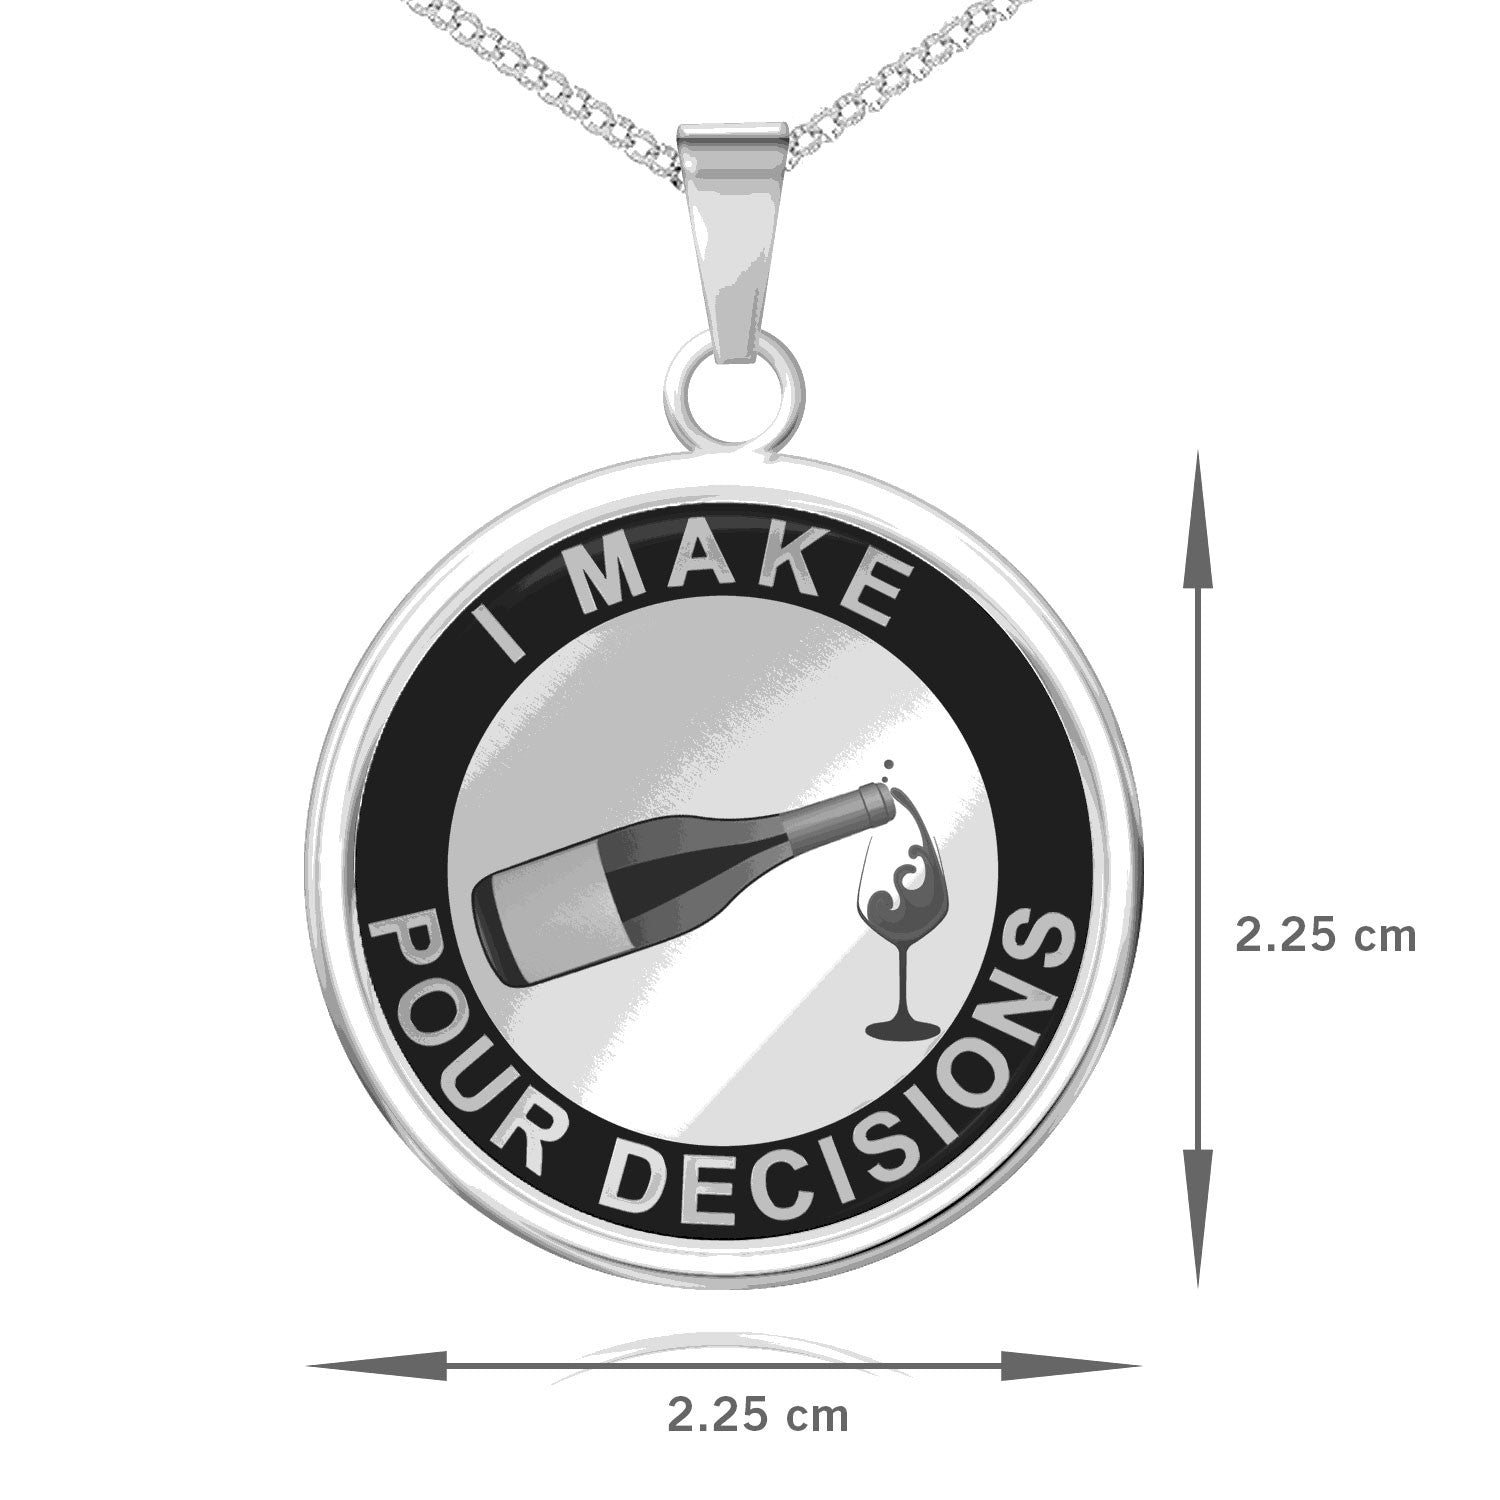 I Make Pour Decisions Pendant